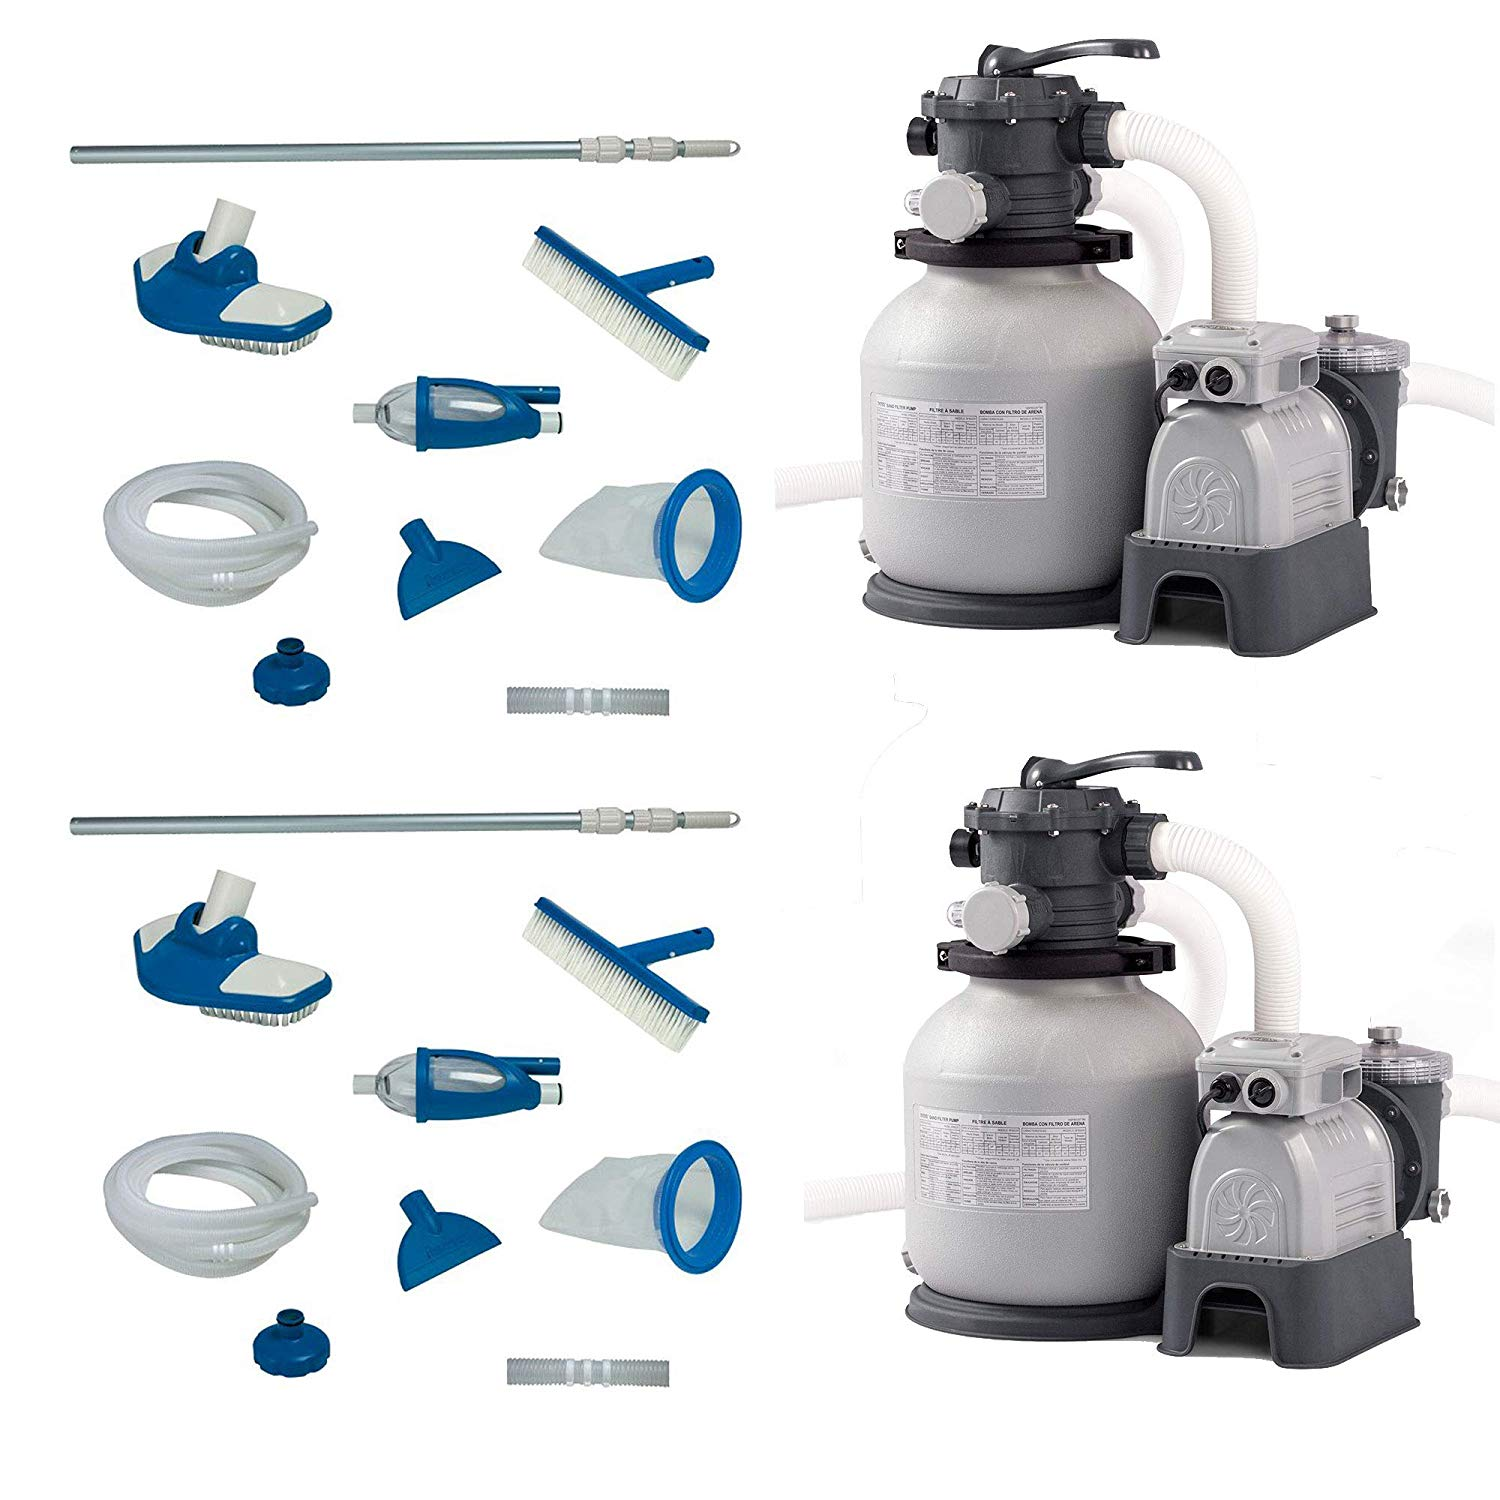 Intex Pool Maintenance Kit w/Vacuum & Pole (2 Pack) & Sand Filter Pump (2 Pack)